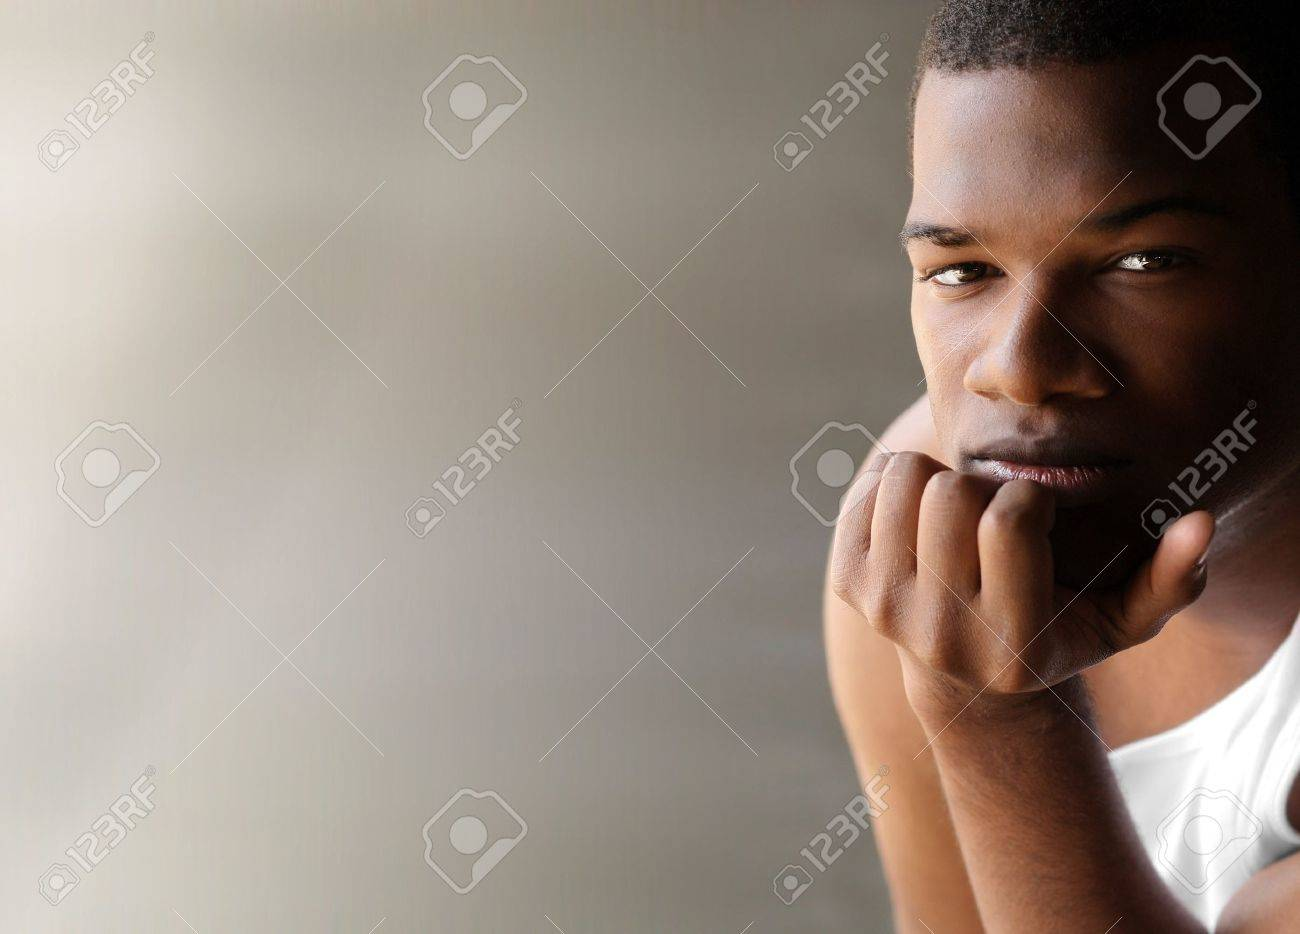 Portrait of a young black man thinking against neutral modern background with copy space Stock Photo - 9893270